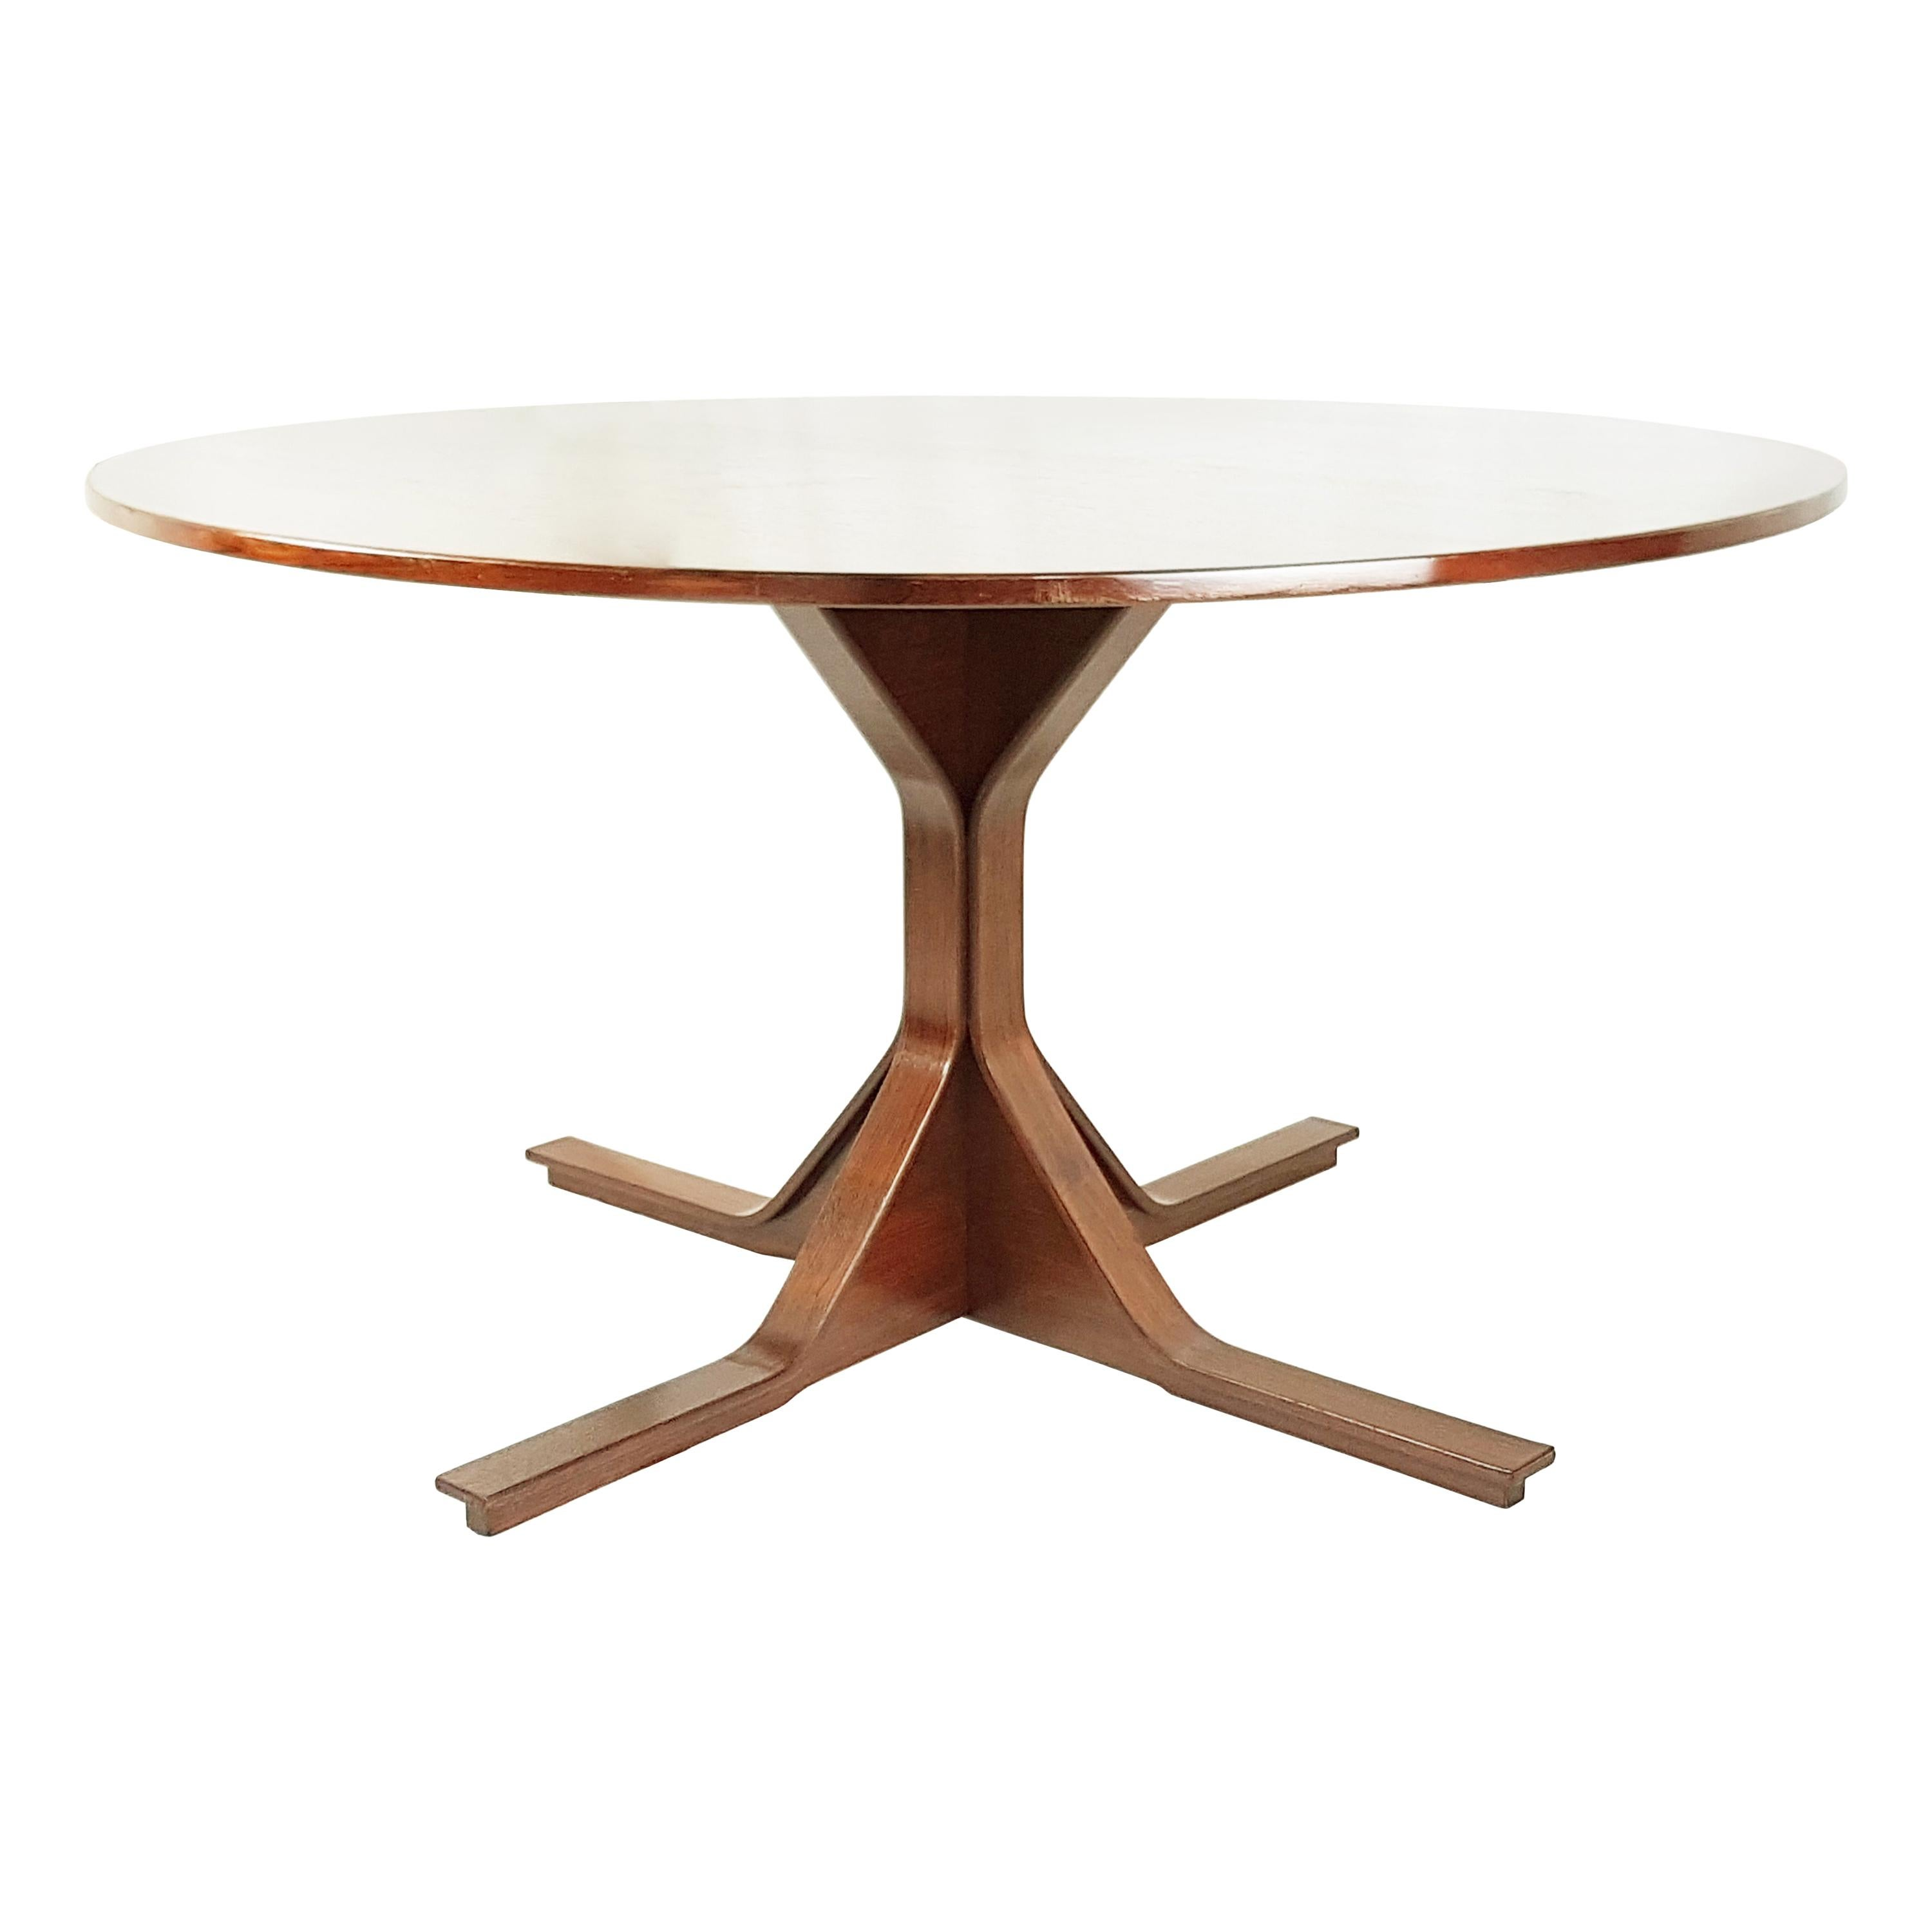 Italian Wooden Round, 1960s Dining Table by Gianfranco Frattini for Bernini